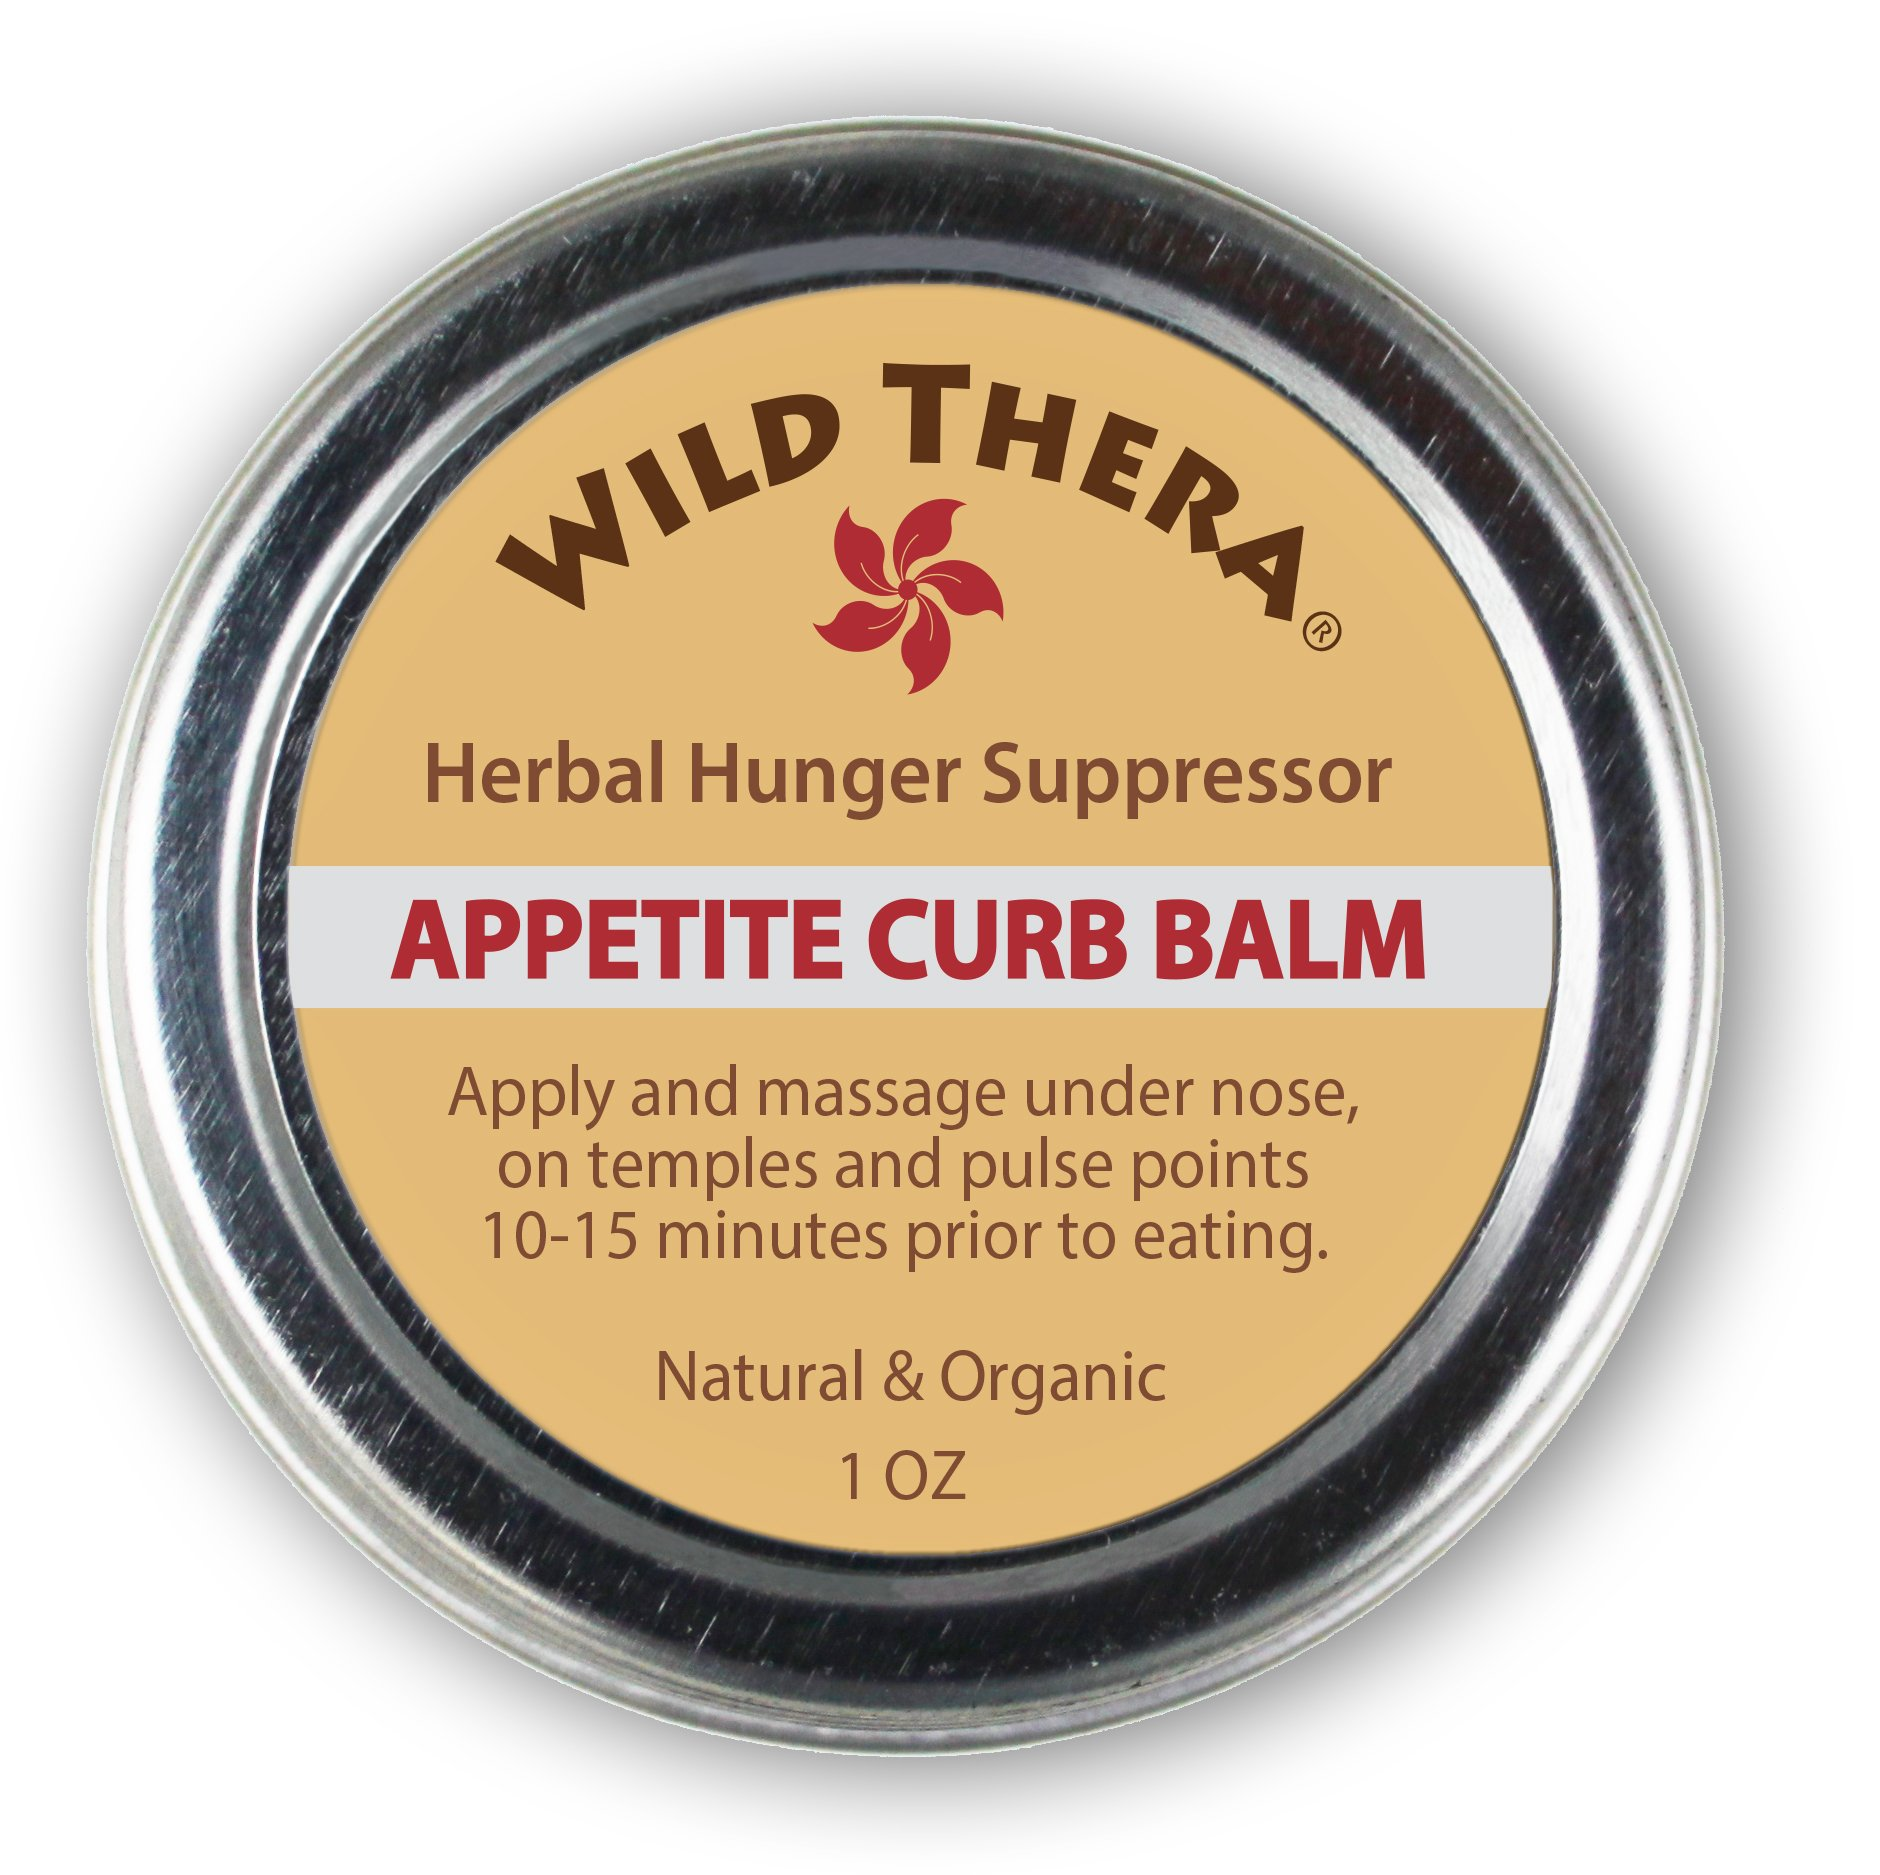 Herbal Appetite Suppressant Balm. Aromatherapy Hunger Suppressant Cream for diet control and weight loss. Safe with diet pills, fat burners, weight loss pills, detox cleanse.